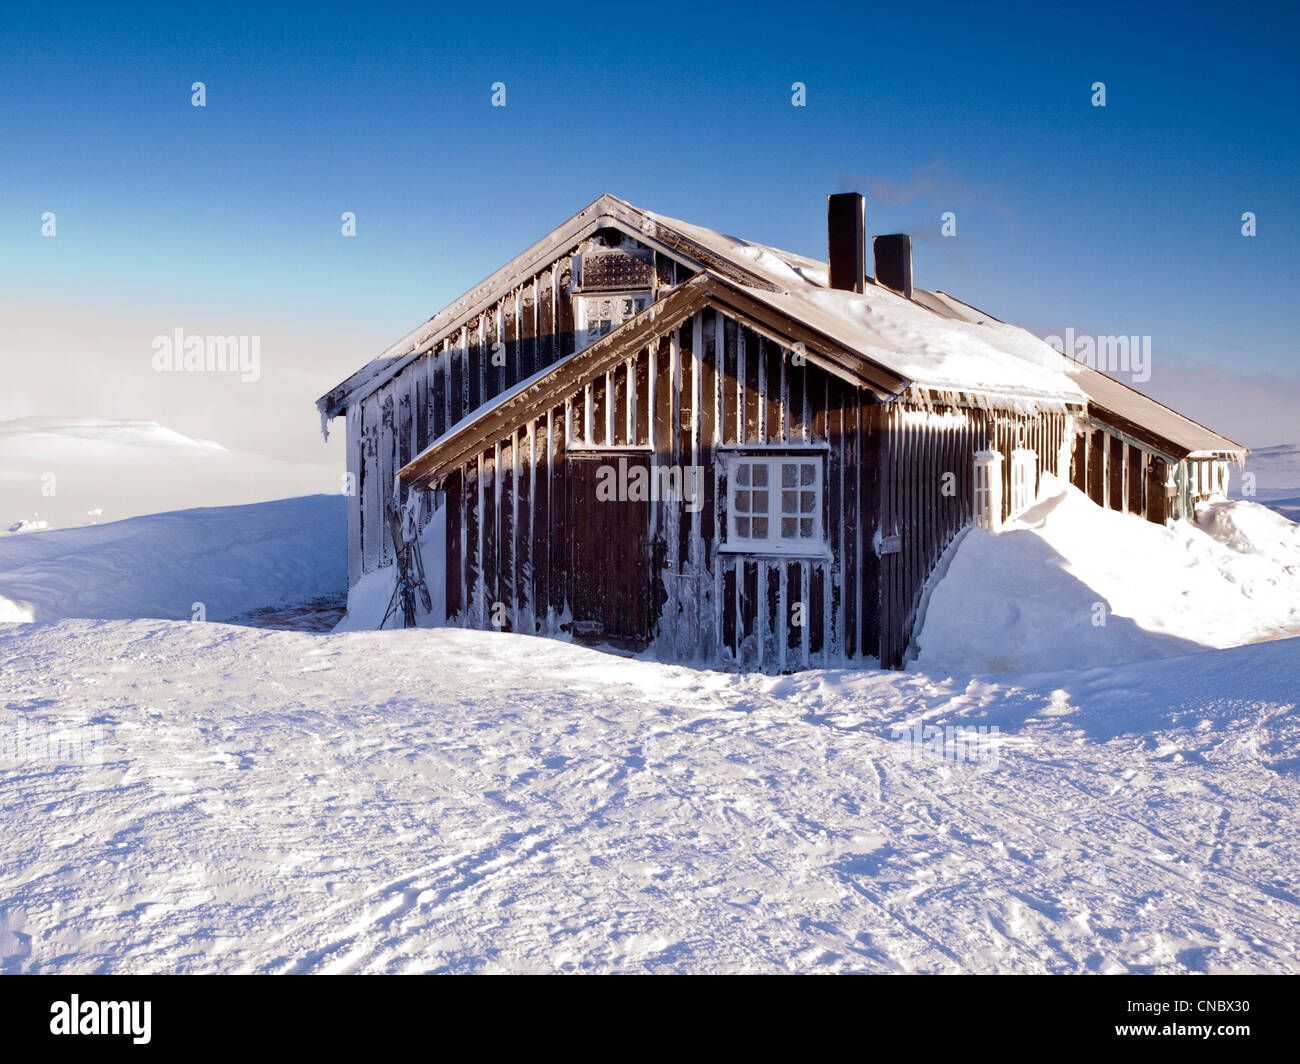 snow covered Norwegian mountain hut operated by the DNT, the Norwegian trekking association - Stock Image